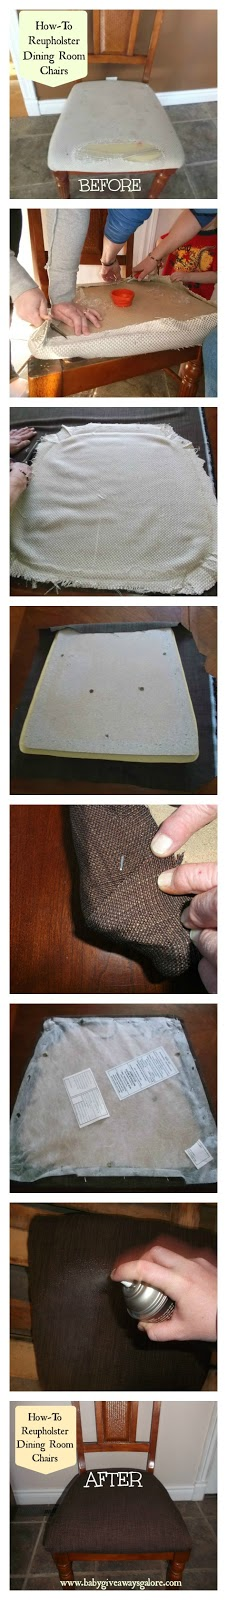 How-To Reupholster Dining Room Chairs #DIY #Tutorial